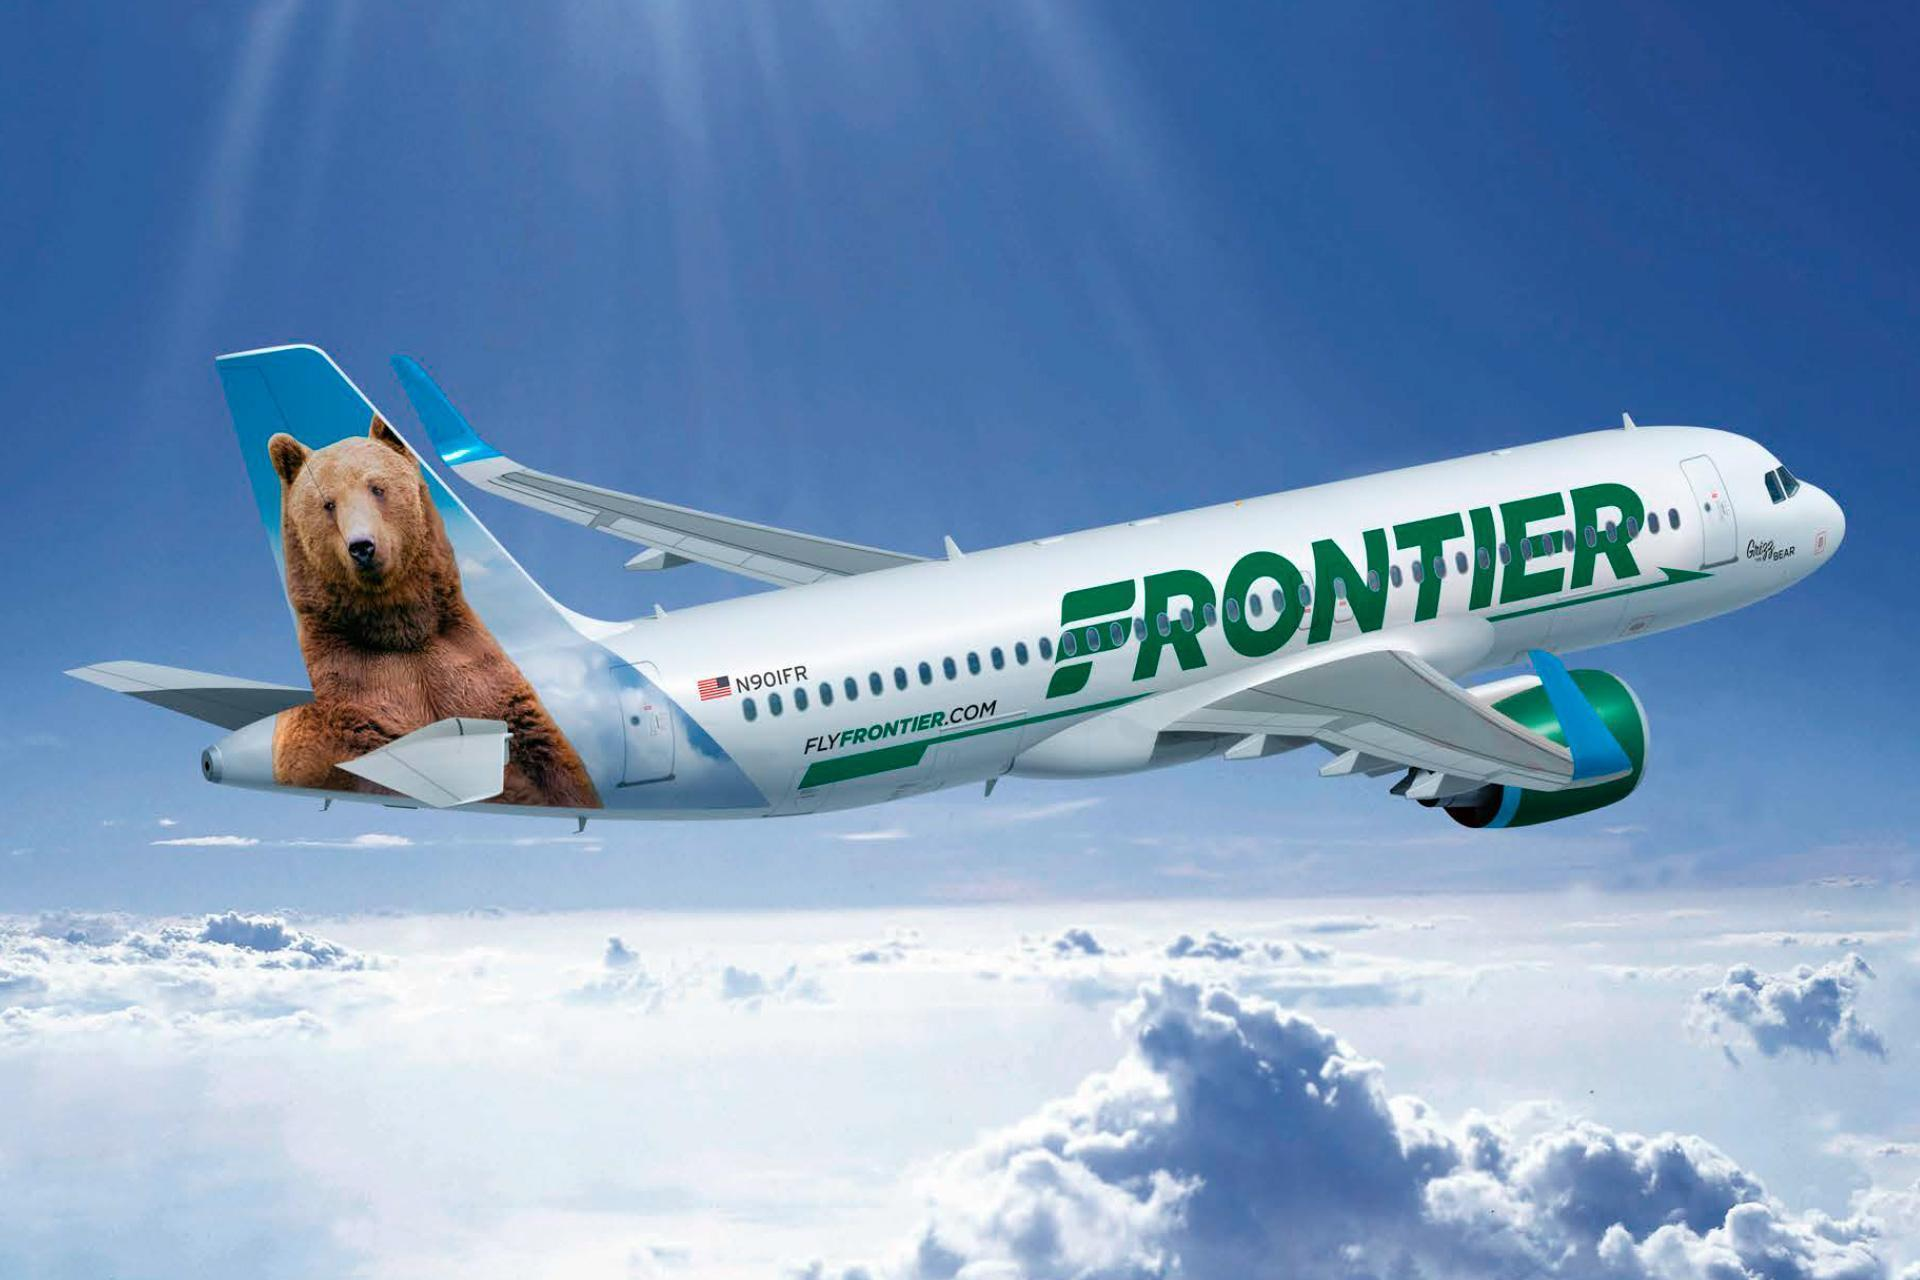 frontier Airlines Customer Service number.jpg